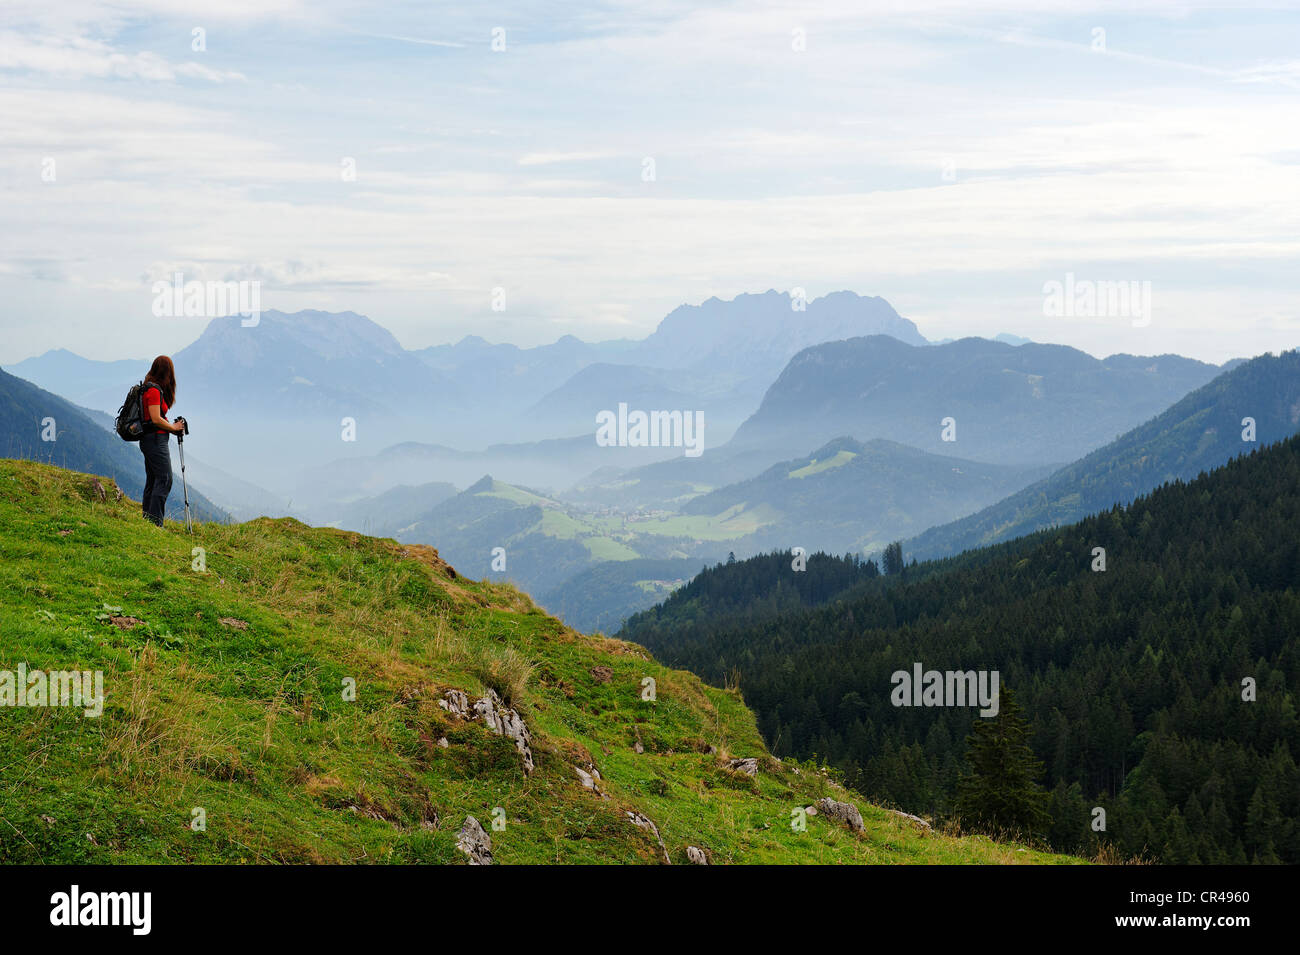 Hiker standing on the Ackernalm alp, view of the Inn Valley and the Kaisergebirge mountains, Tyrol, Austria, Europe - Stock Image